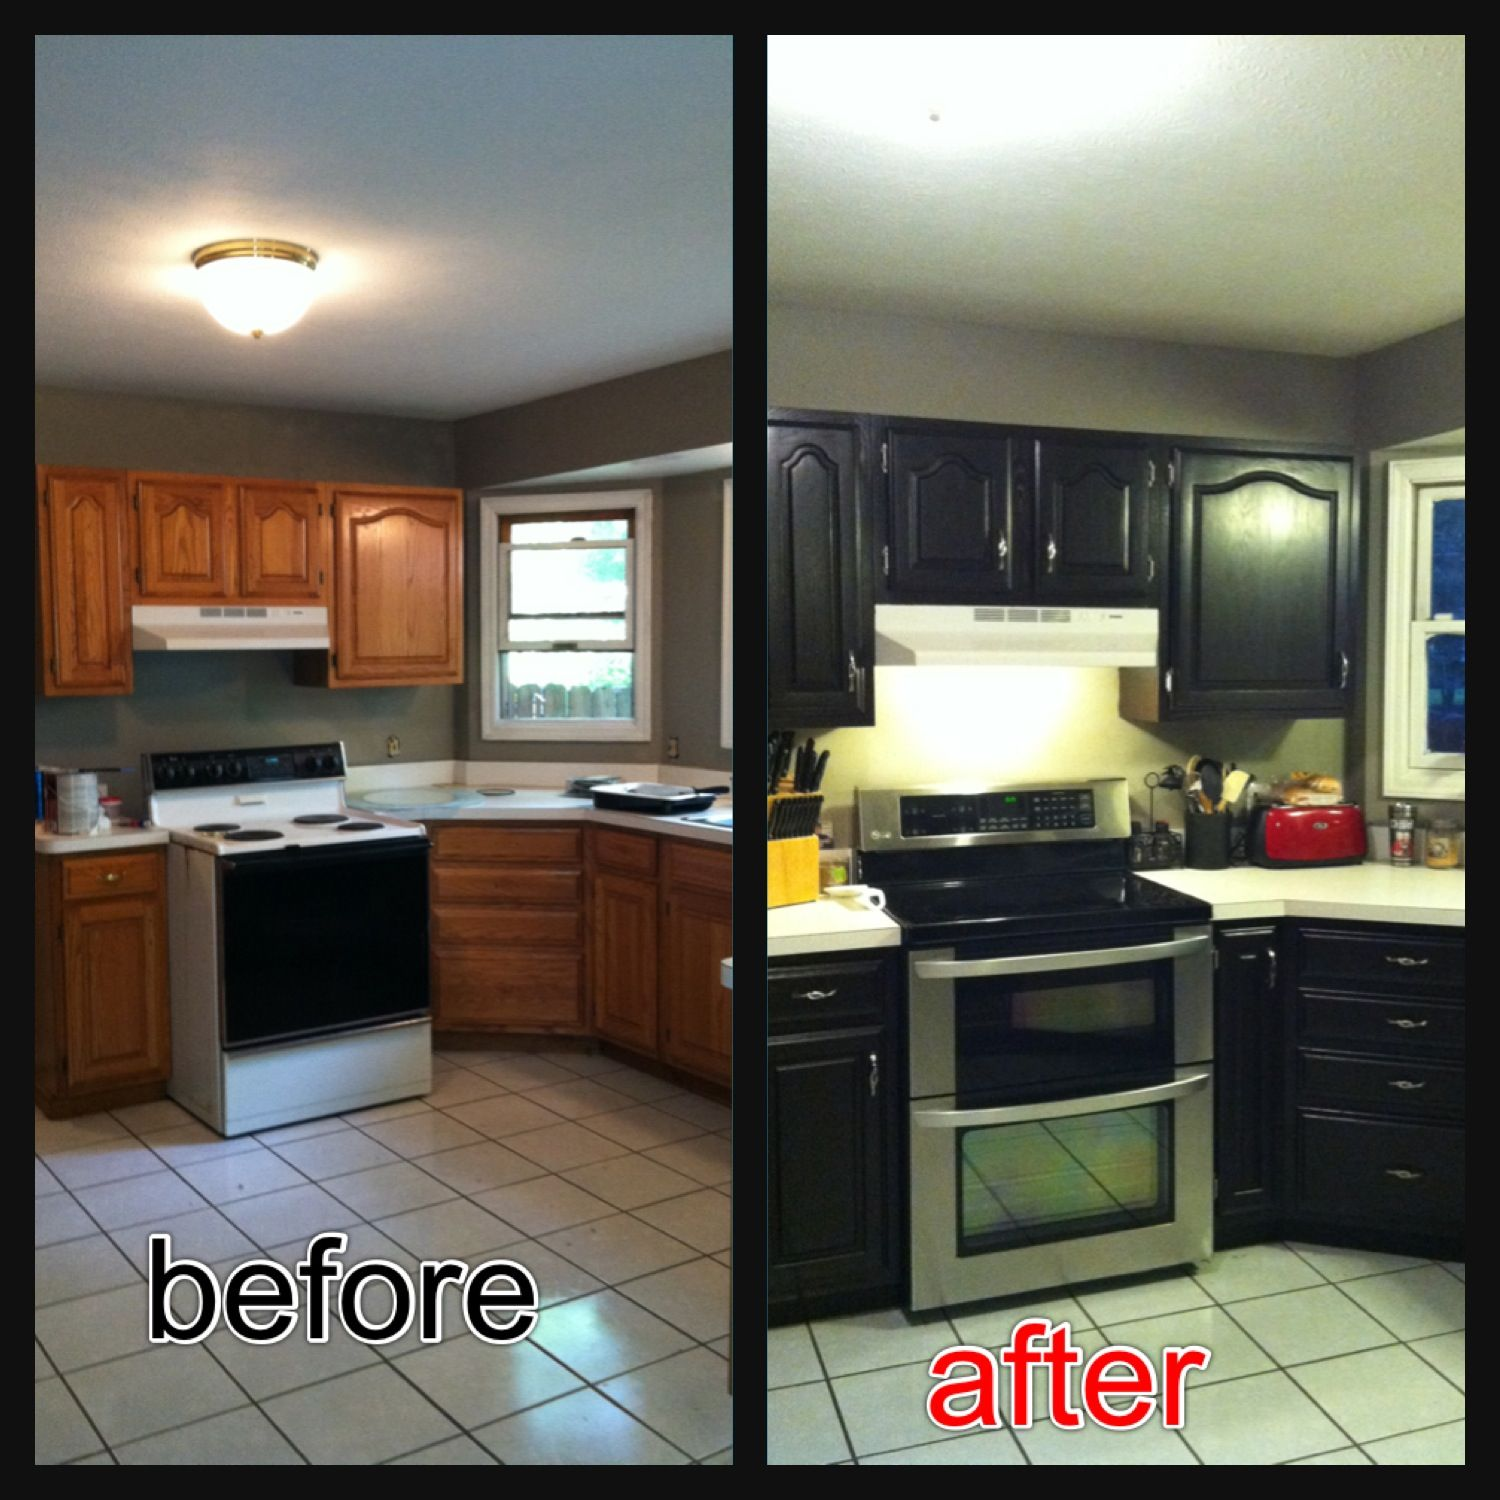 gel stain kitchen cabinets Re stained cabinets using Java Gel stain Very easy to use and love the